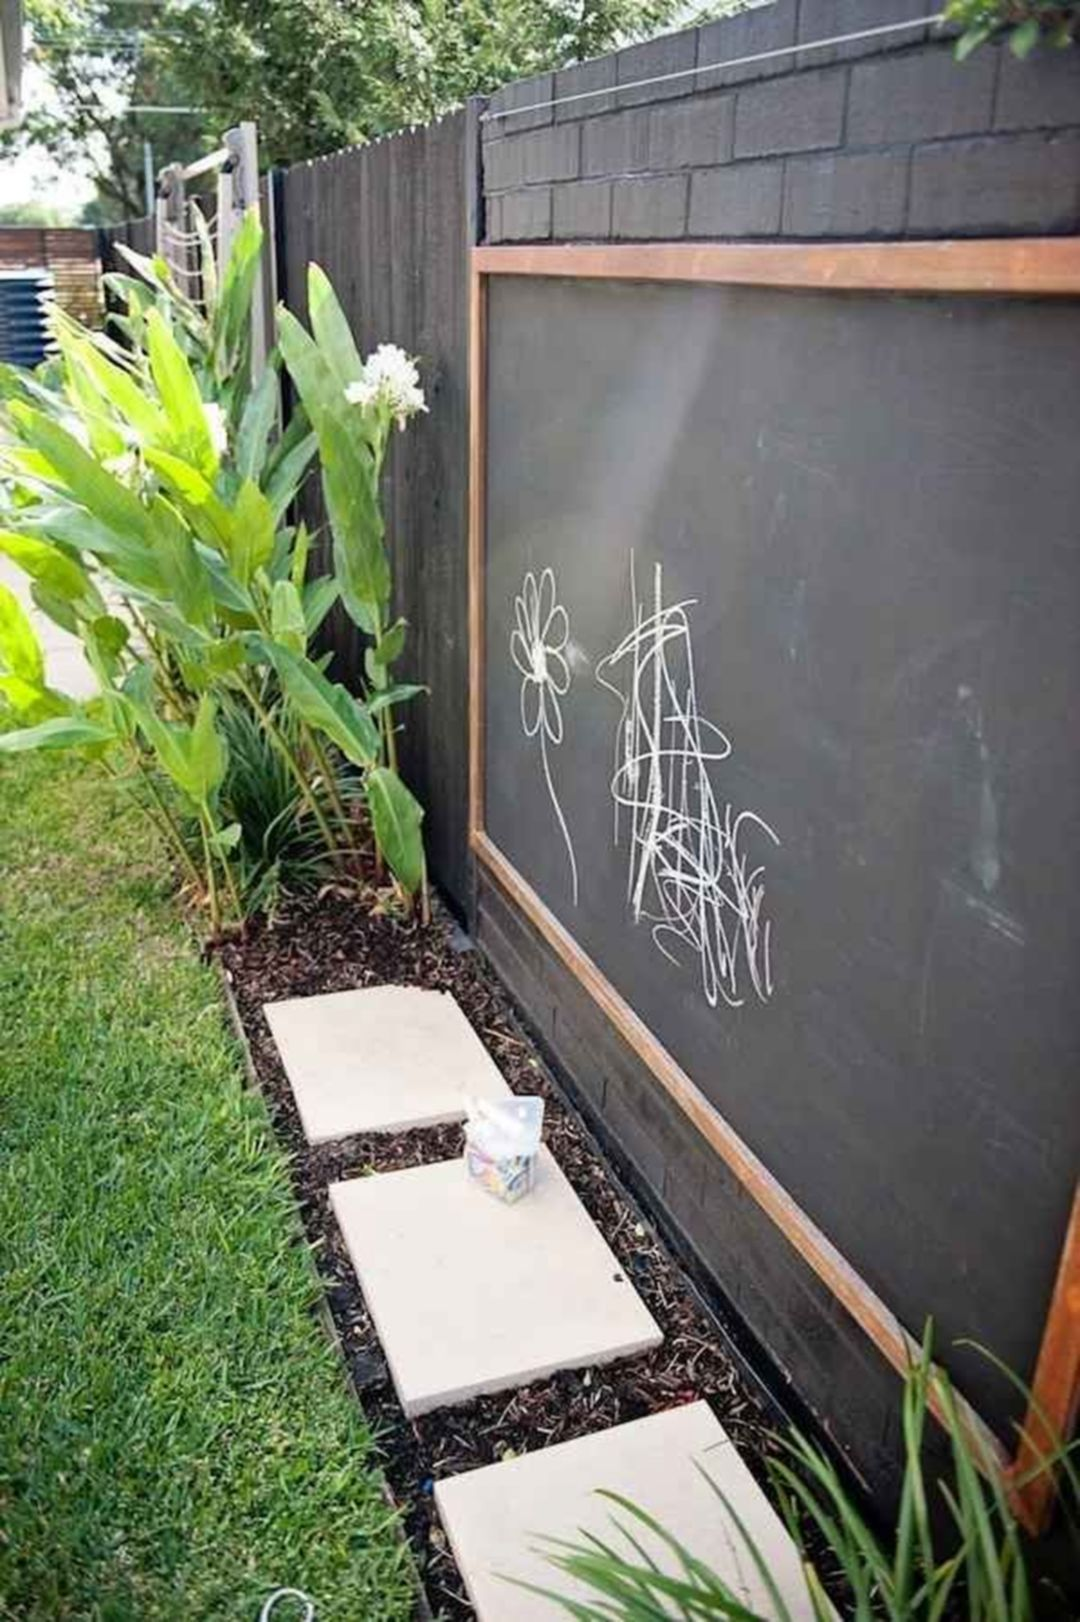 Home And Backyard beautiful garden design ideas 150 | backyard dreams * | pinterest